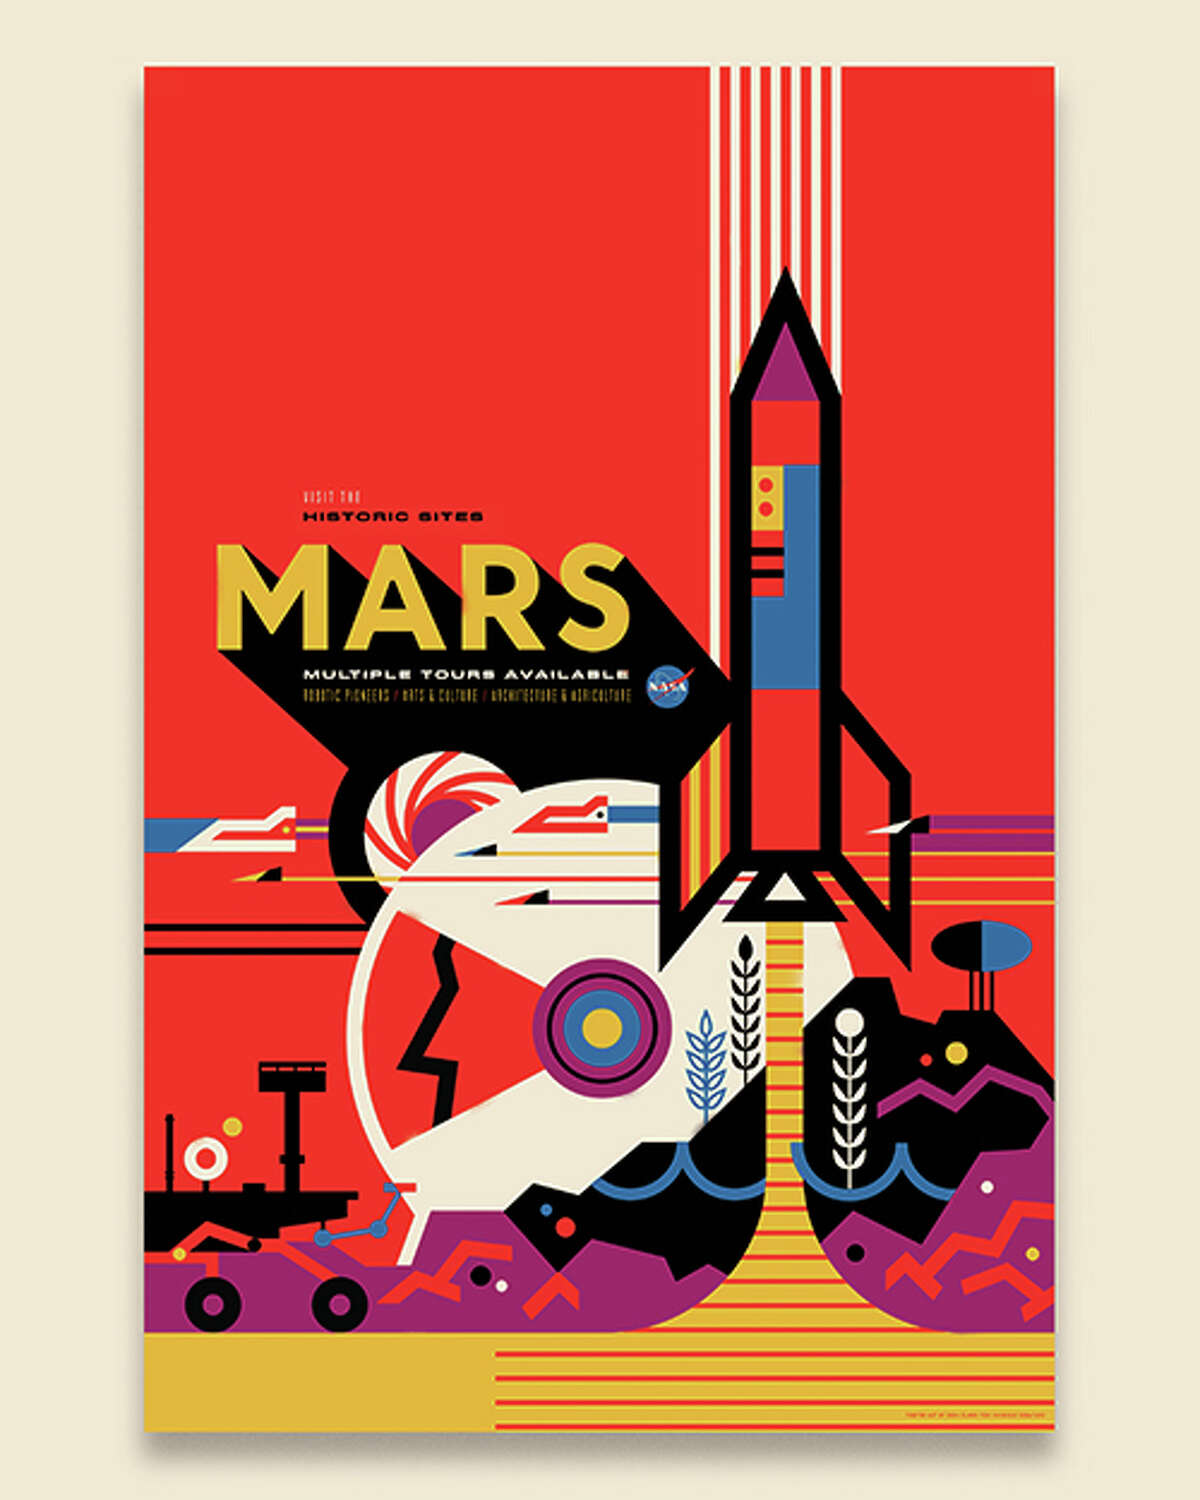 """""""Mars: NASA's Mars Exploration Program seeks to understand whether Mars was, is, or can be a habitable world. Missions like Mars Pathfinder, Mars Exploration Rovers, Mars Science Laboratory and Mars Reconnaissance Orbiter, among many others, have provided important information in understanding of the habitability of Mars. This poster imagines a future day when we have achieved our vision of human exploration of Mars and takes a nostalgic look back at the great imagined milestones of Mars exploration that will someday be celebrated as """"historic sites."""" - Invisible Creature"""